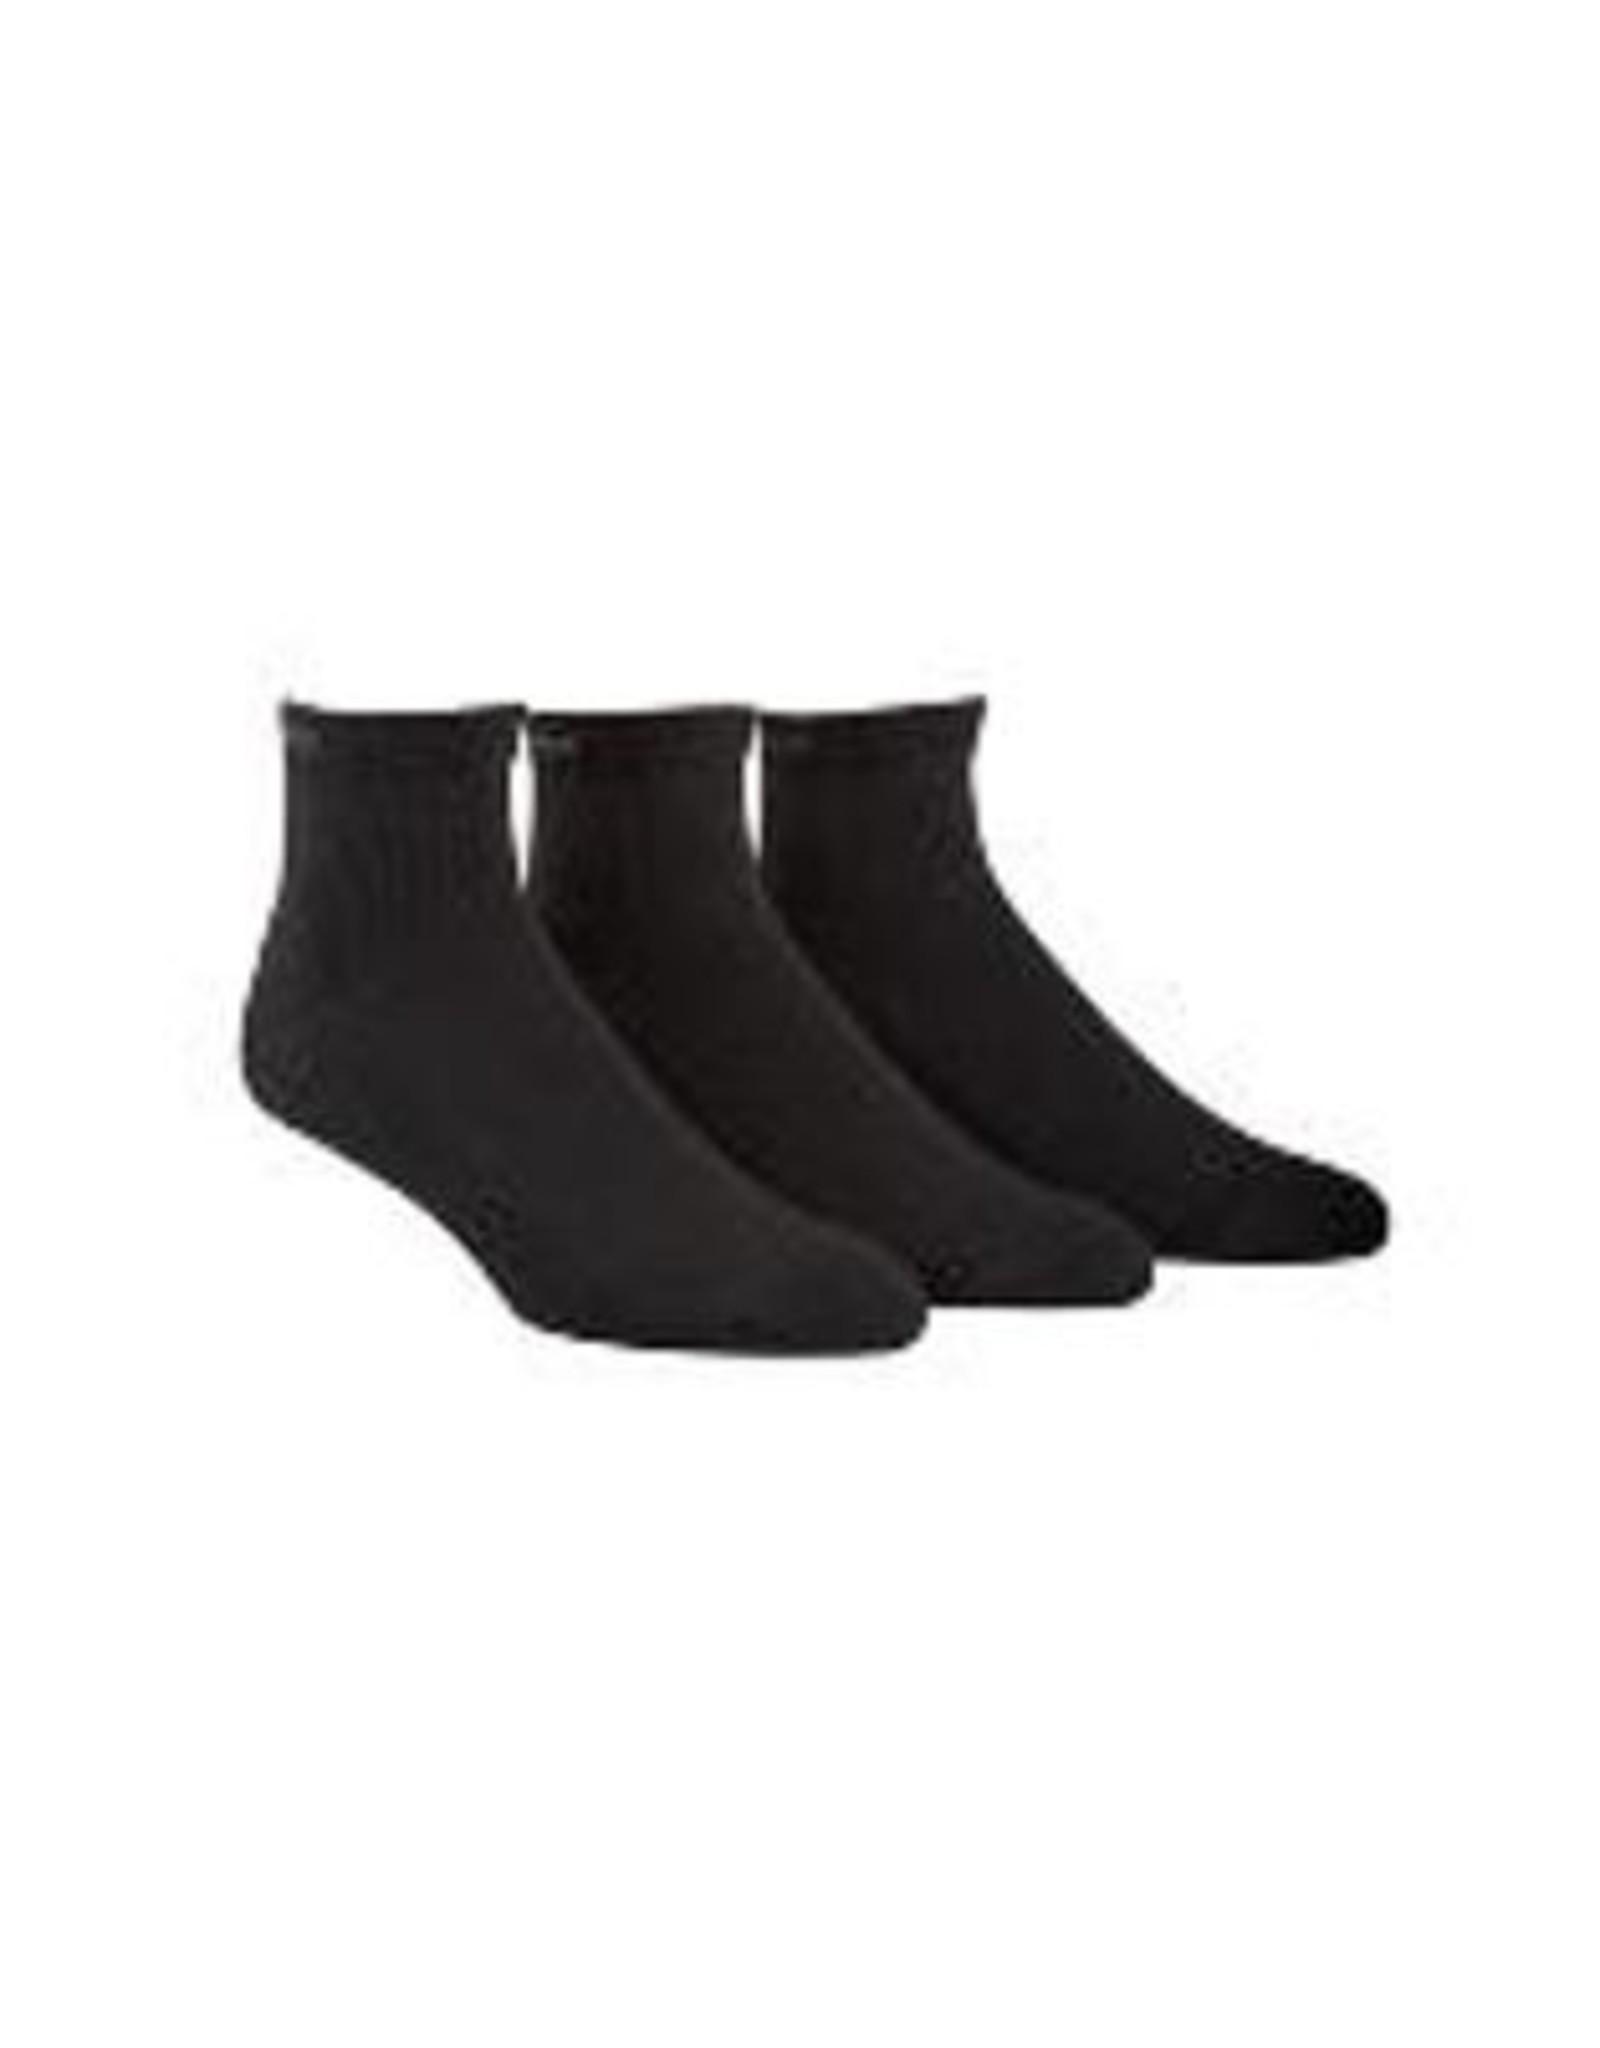 McGregor Socks Men's CK Short - Black